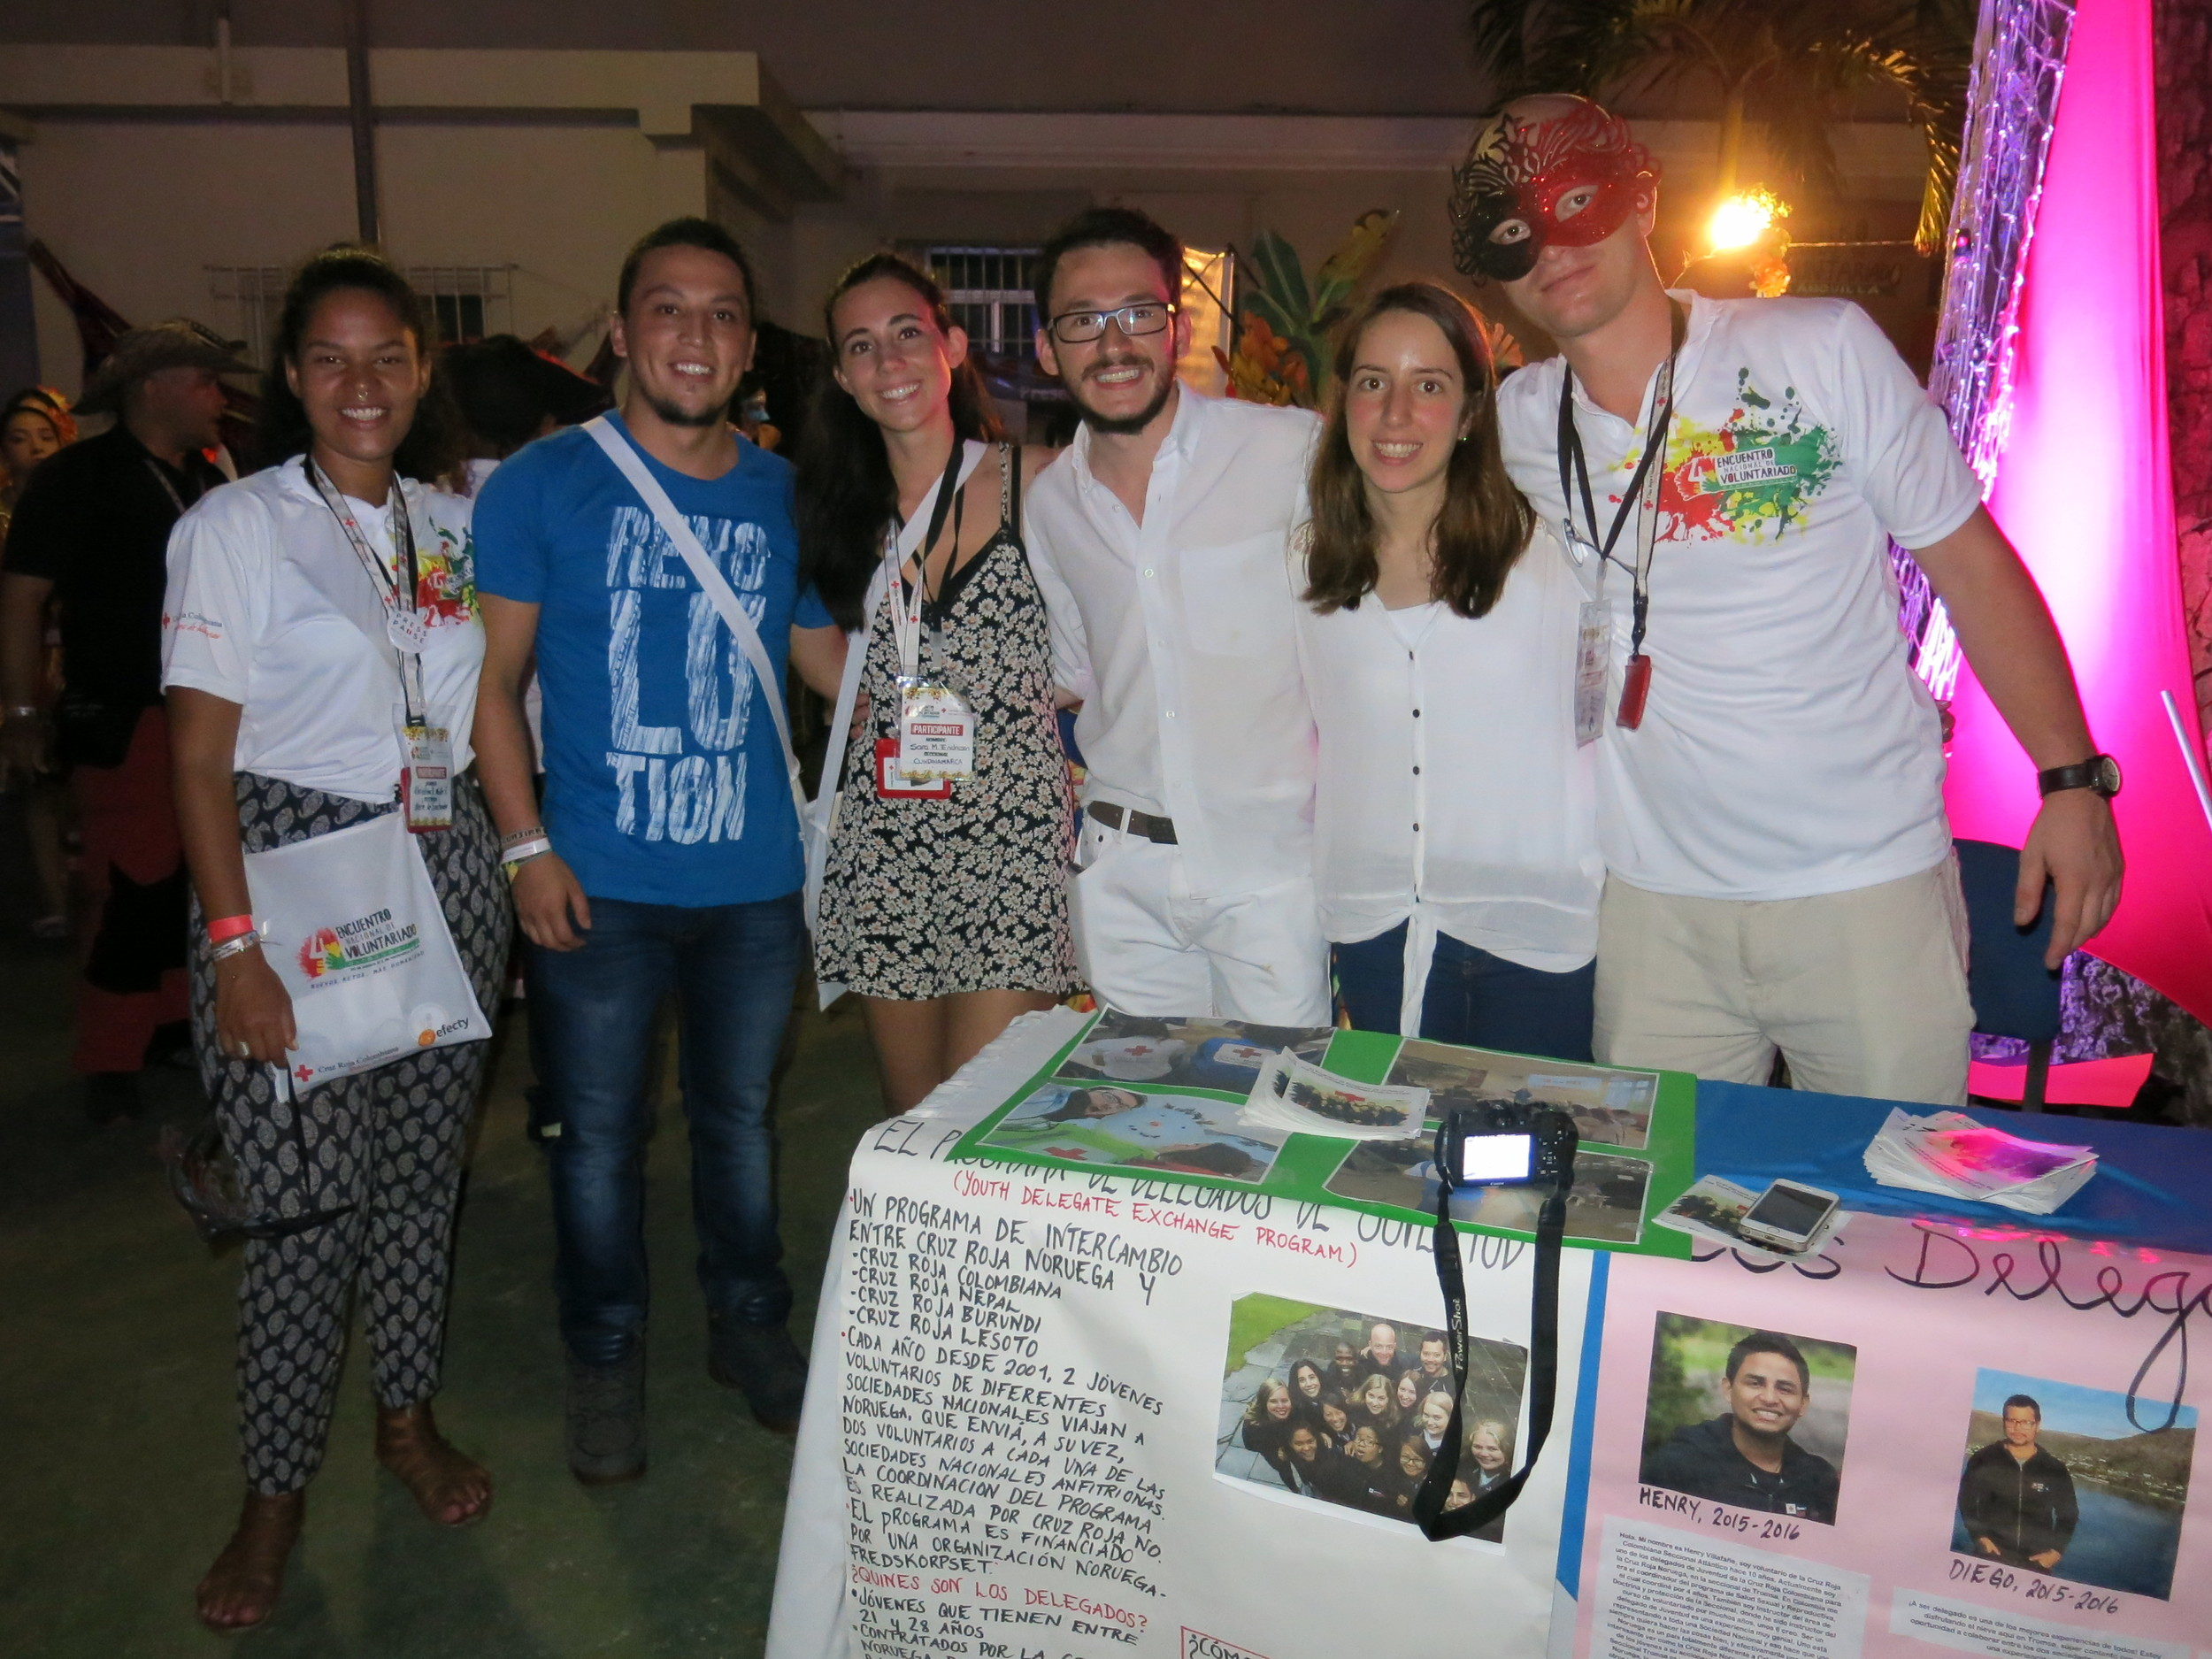 El equipo de delegados de juventud! Our team of youth delegates from Norway and Colombia!